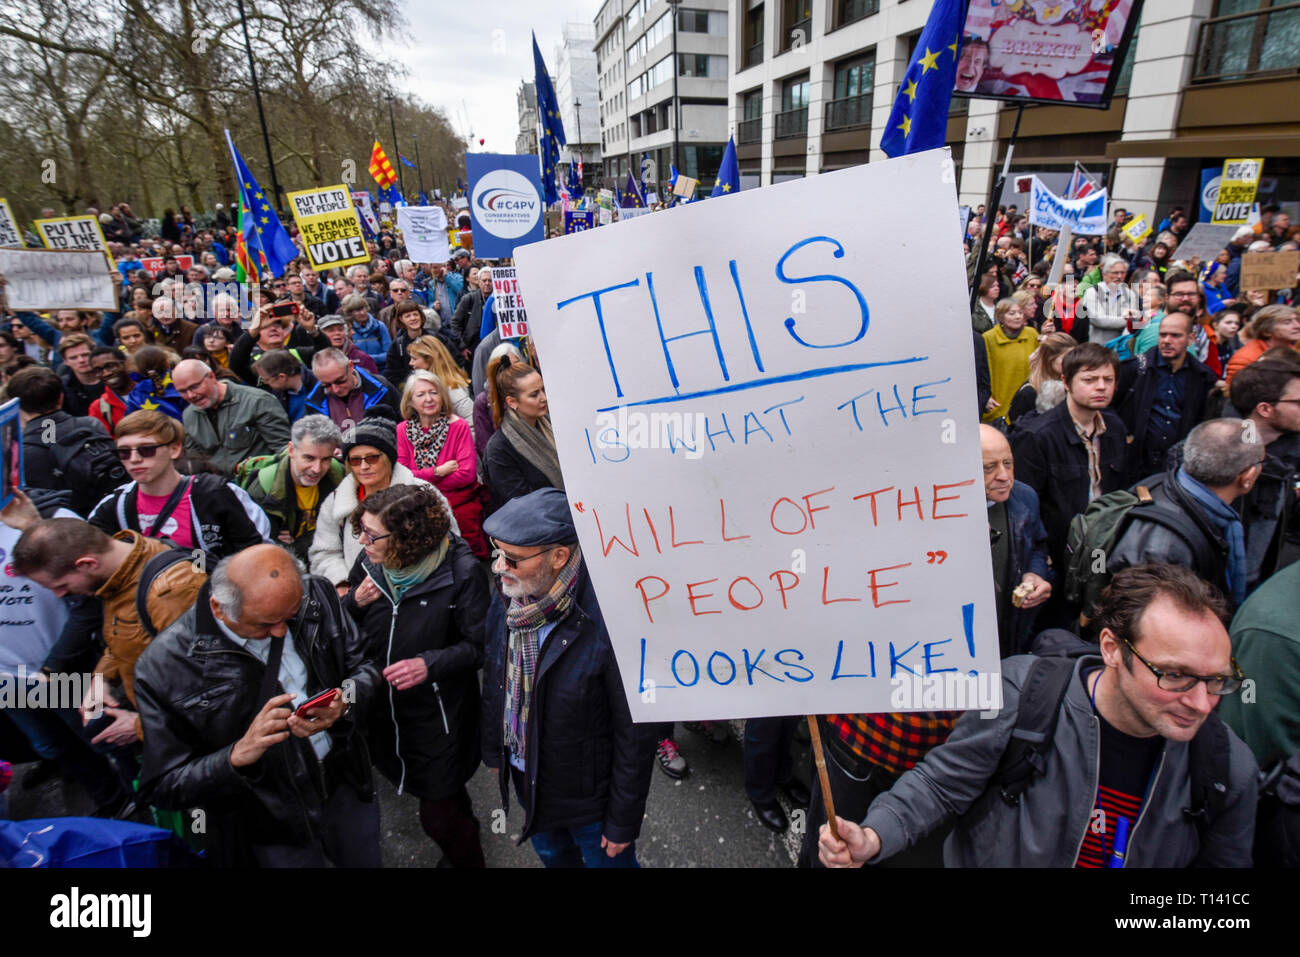 """London, UK.  23 March 2019. Signs carried aloft. Thousands of people take part in the """"Put It To The People March"""" marching from Park Lane to Parliament Square on what was supposed to be six days before the UK was due to leave the EU, before an extension to the departure date was given.  Protesters demand that the public is given a final say on Brexit as support for the Prime Minister's withdrawal plan continues to recede.  Credit: Stephen Chung / Alamy Live News Stock Photo"""